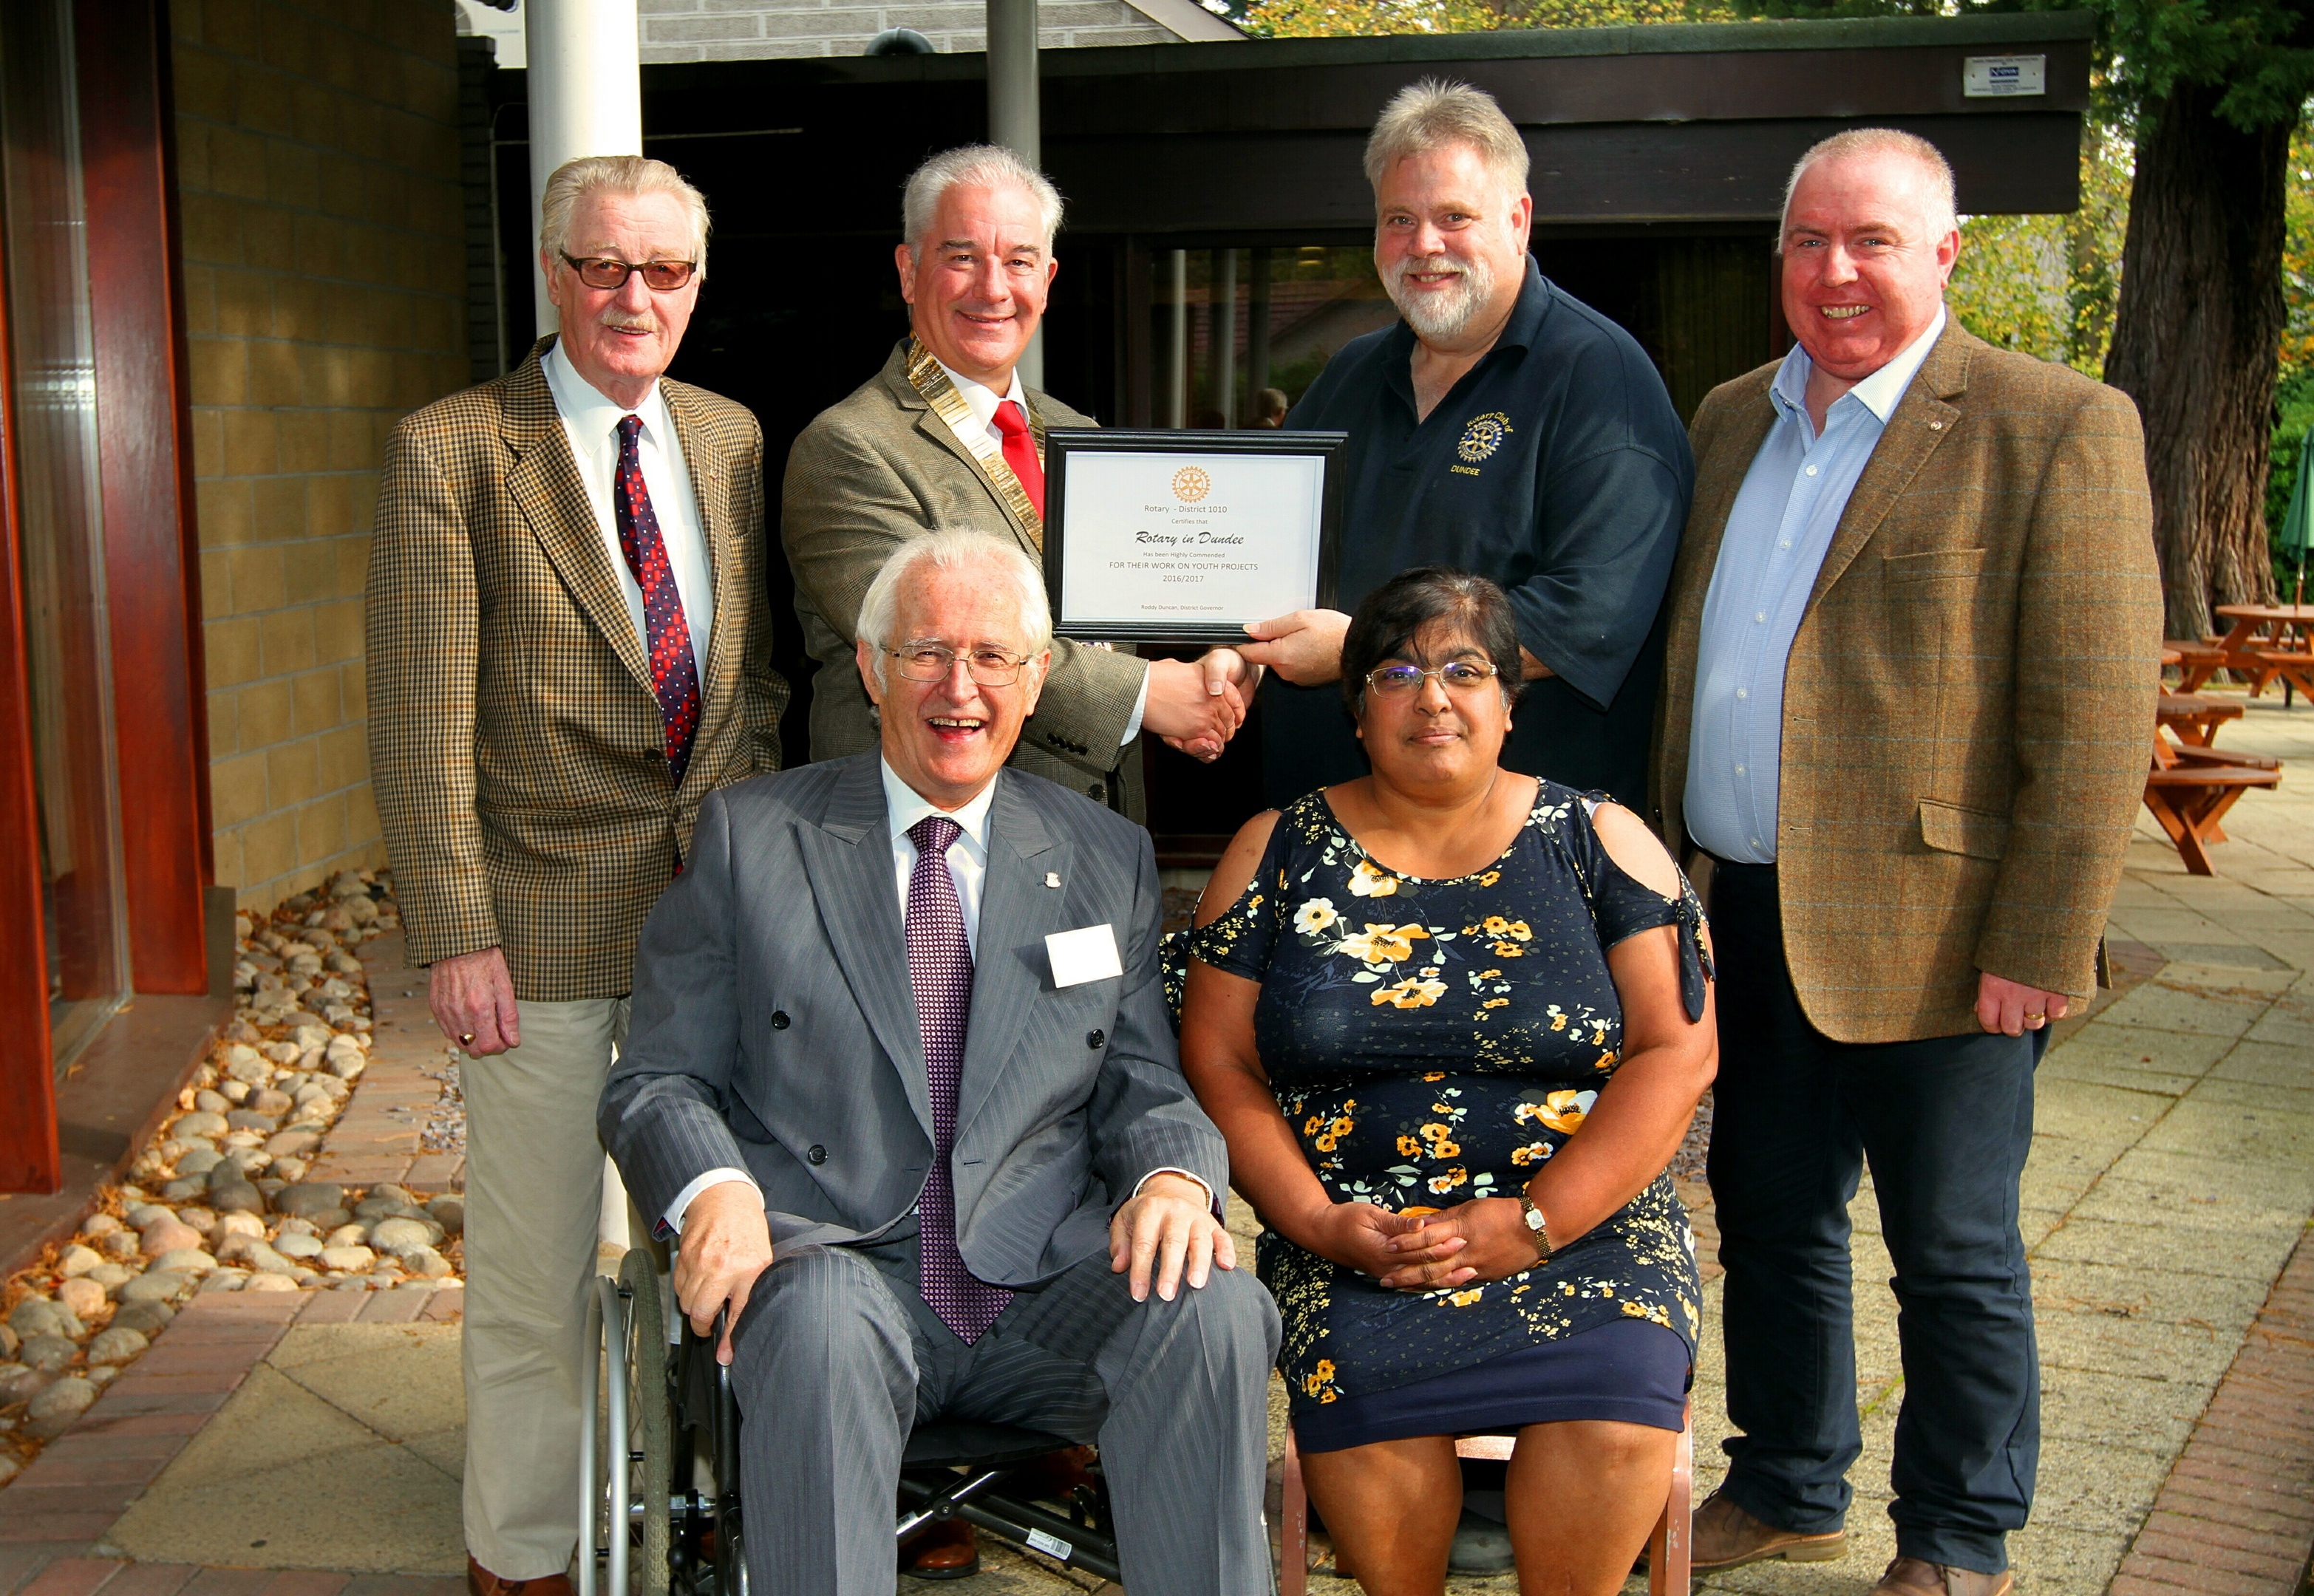 John Watson,  president of Abertay Rotary, Brian Smith, president Dundee Rotary Club , Tim Baker, youth co ordinator of the district, Derrick Lang, vice president of Monifieth district, Ivor Morton, past president of Claverhouse Rotary Club and Pam Kelly, president of Dundee Discovery Rotary Club